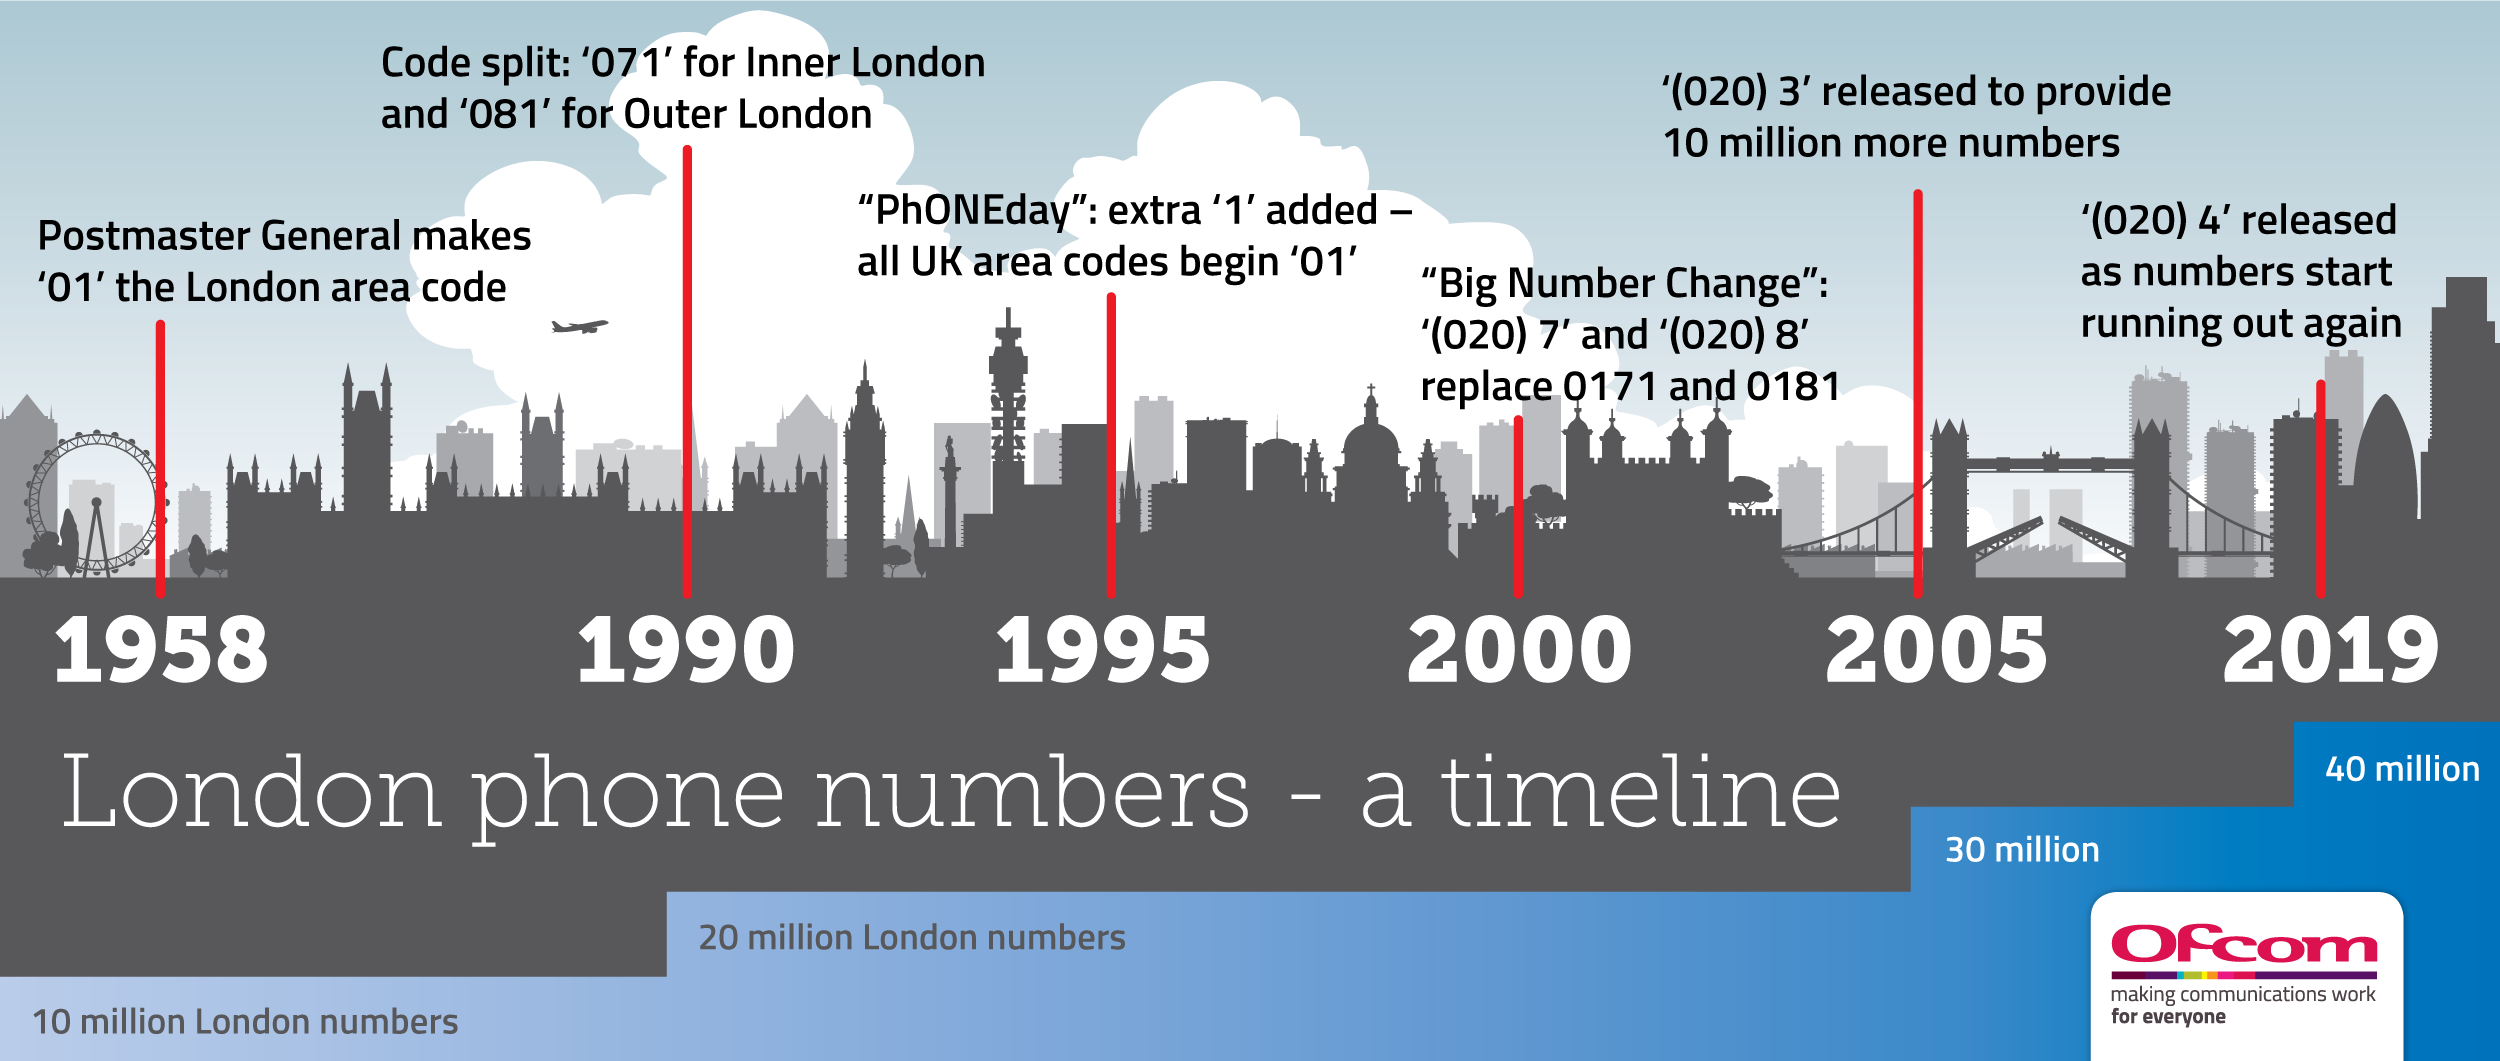 London's area code has changed several times over the years.